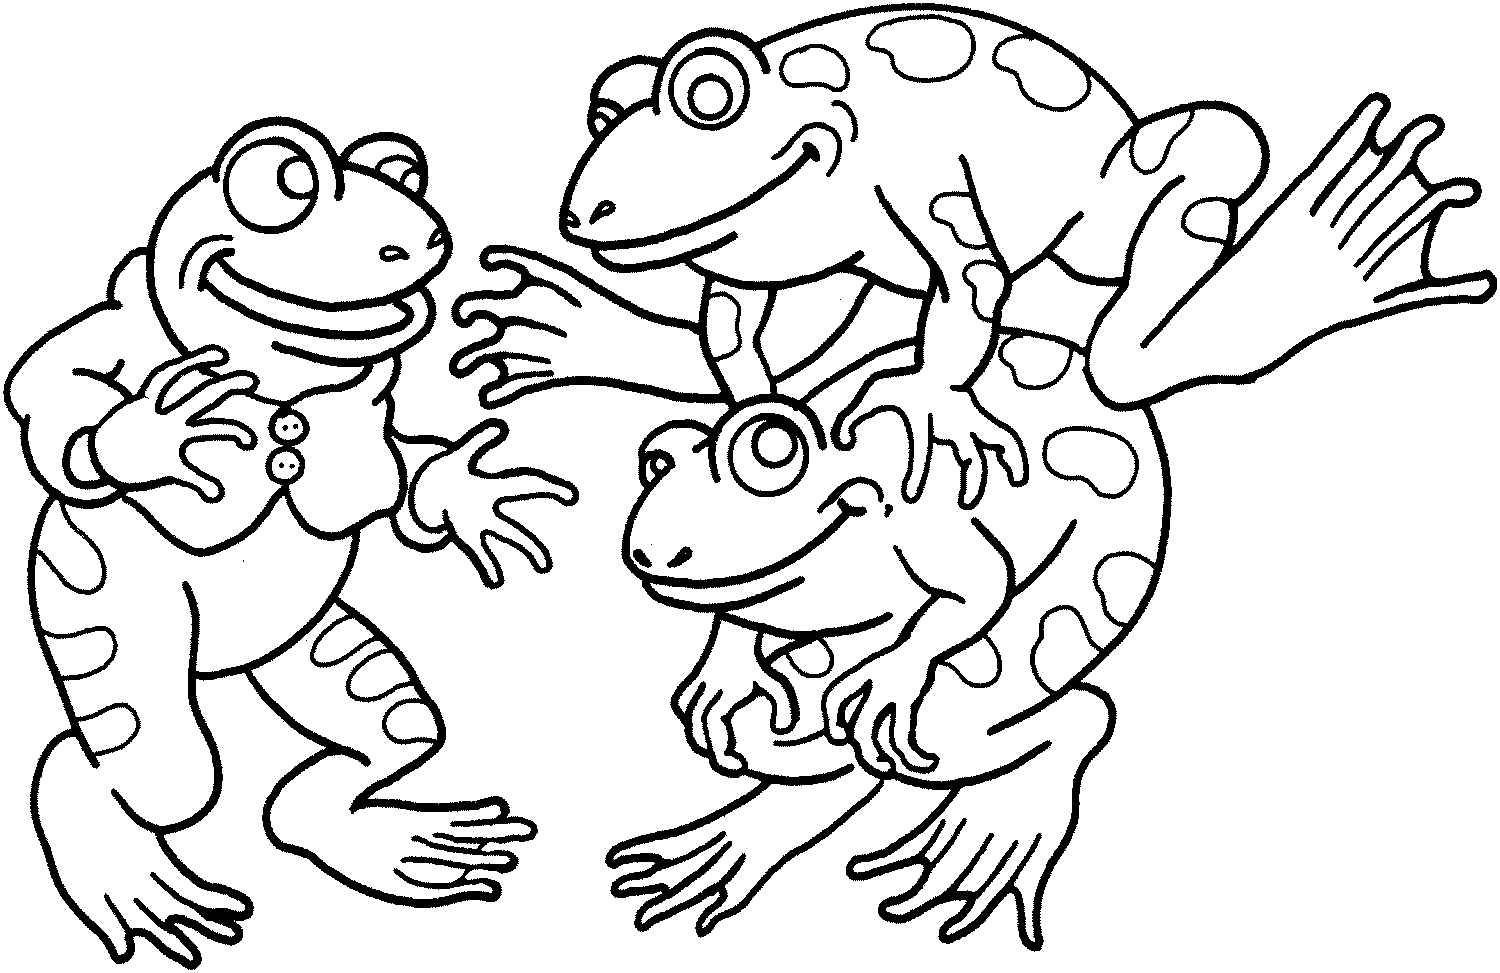 1500x973 Frog Adult Coloring Pages Collection Coloring For Kids